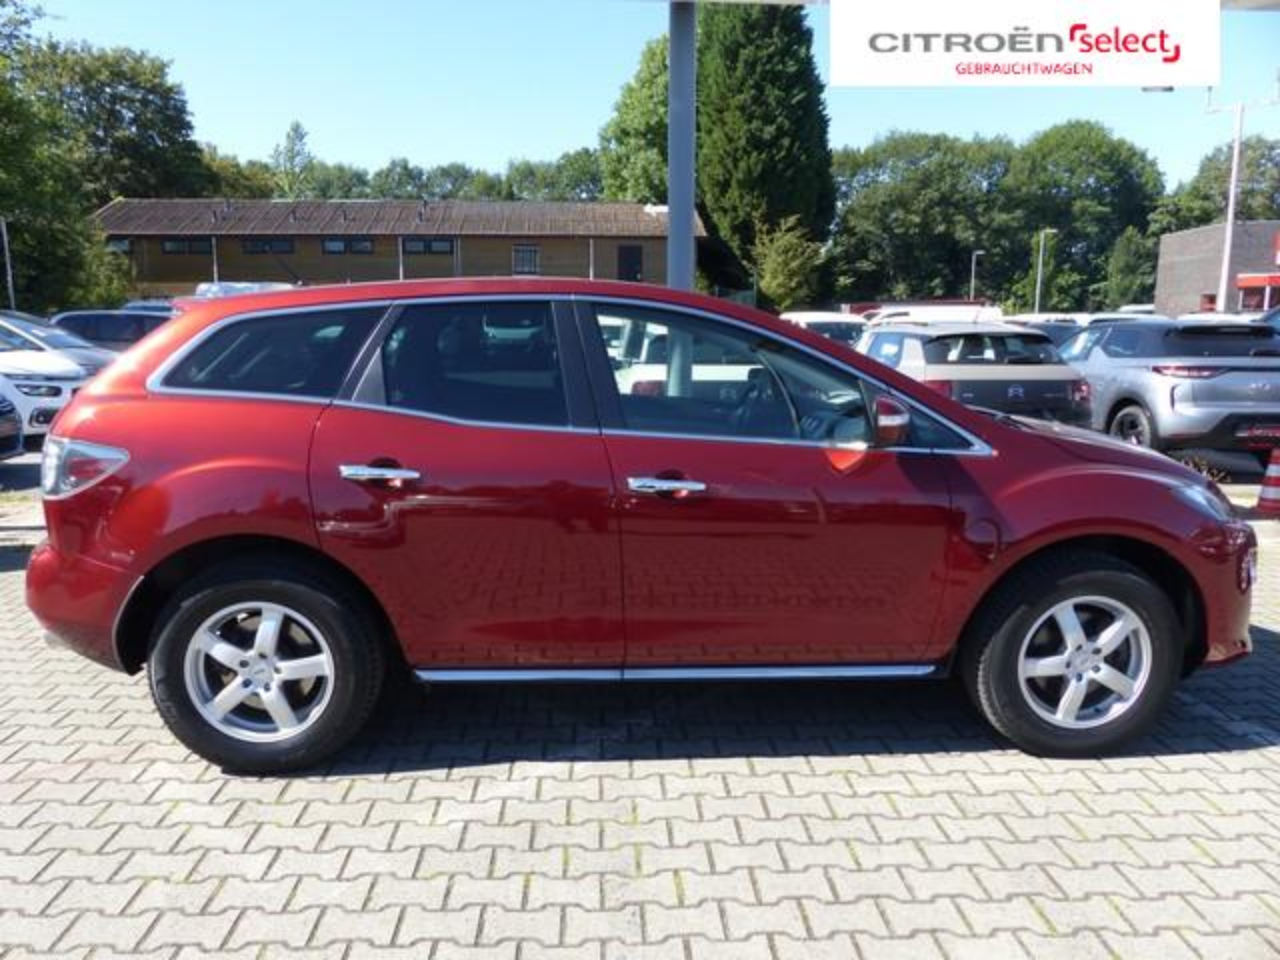 Mazda CX-7 2.2 CD Exclusive-Line,Navi,Tempomat,Bluetooth,AHK,